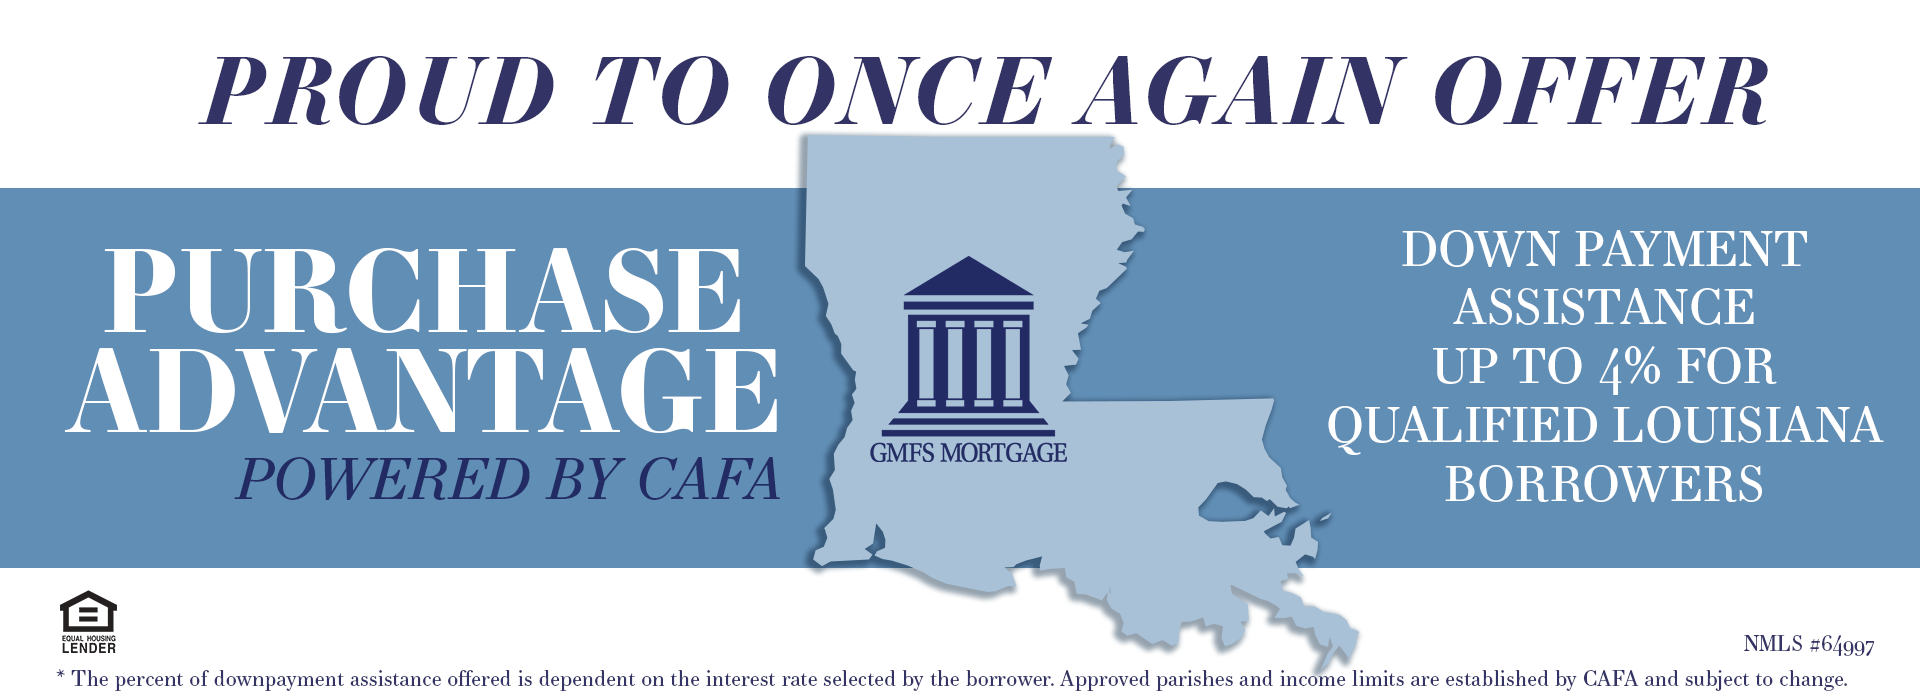 purchase advantage home loan cafa